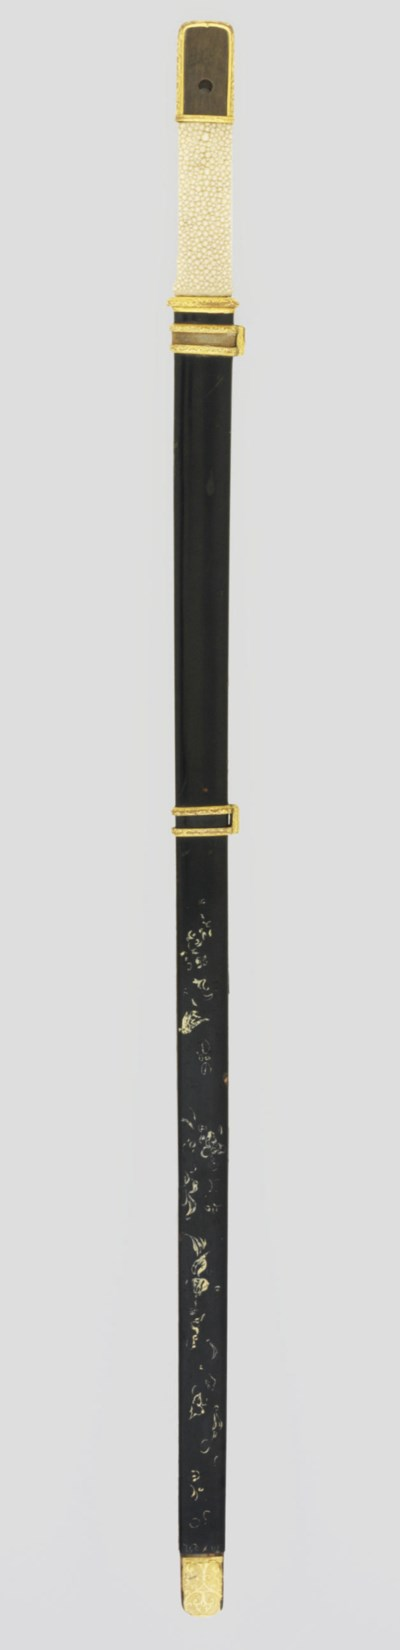 A CHOKUTO [straight sword]